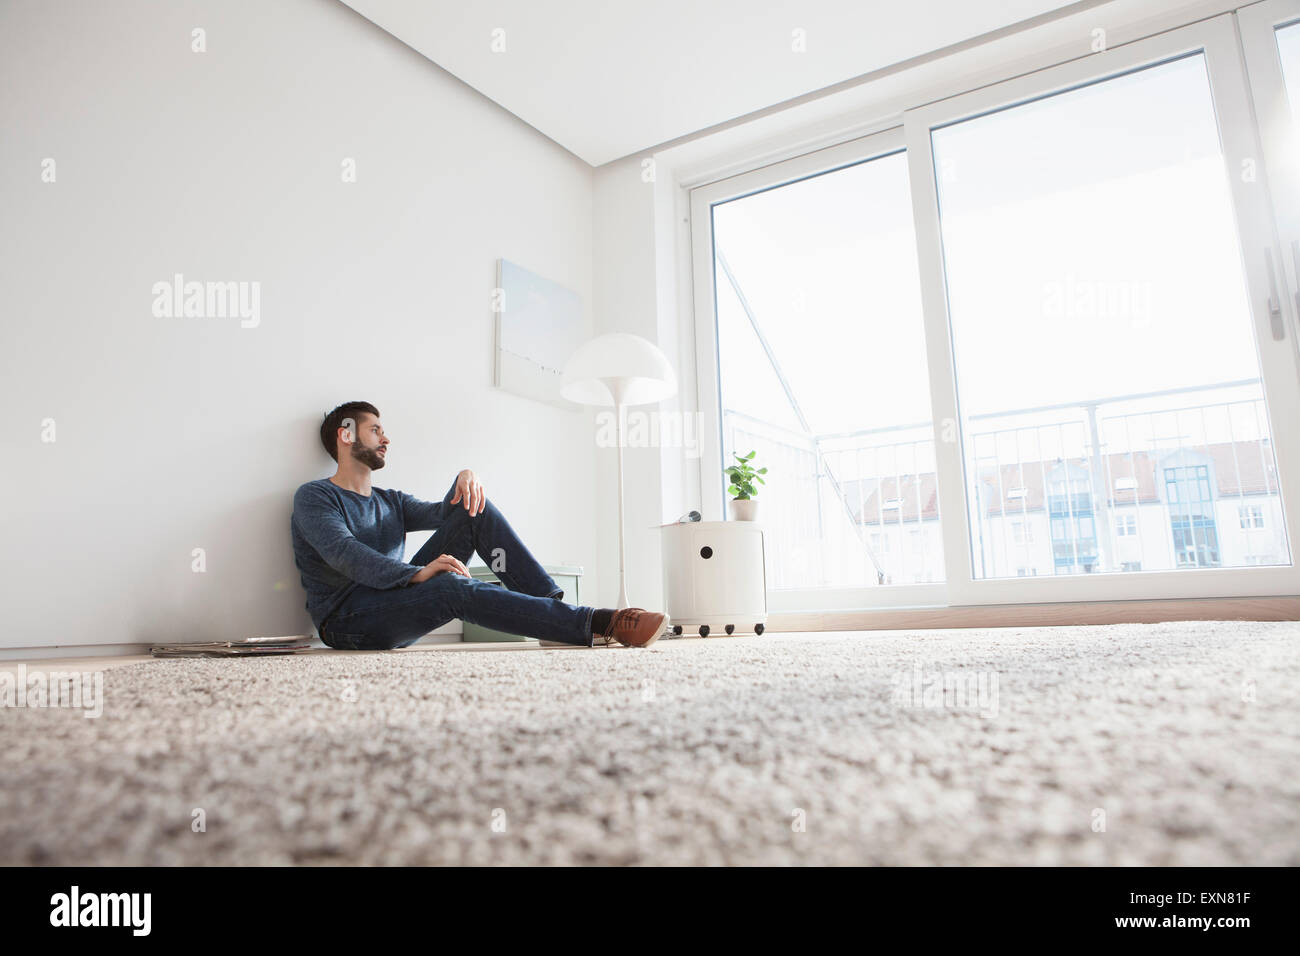 Young man sitting on the floor of living room looking through window - Stock Image